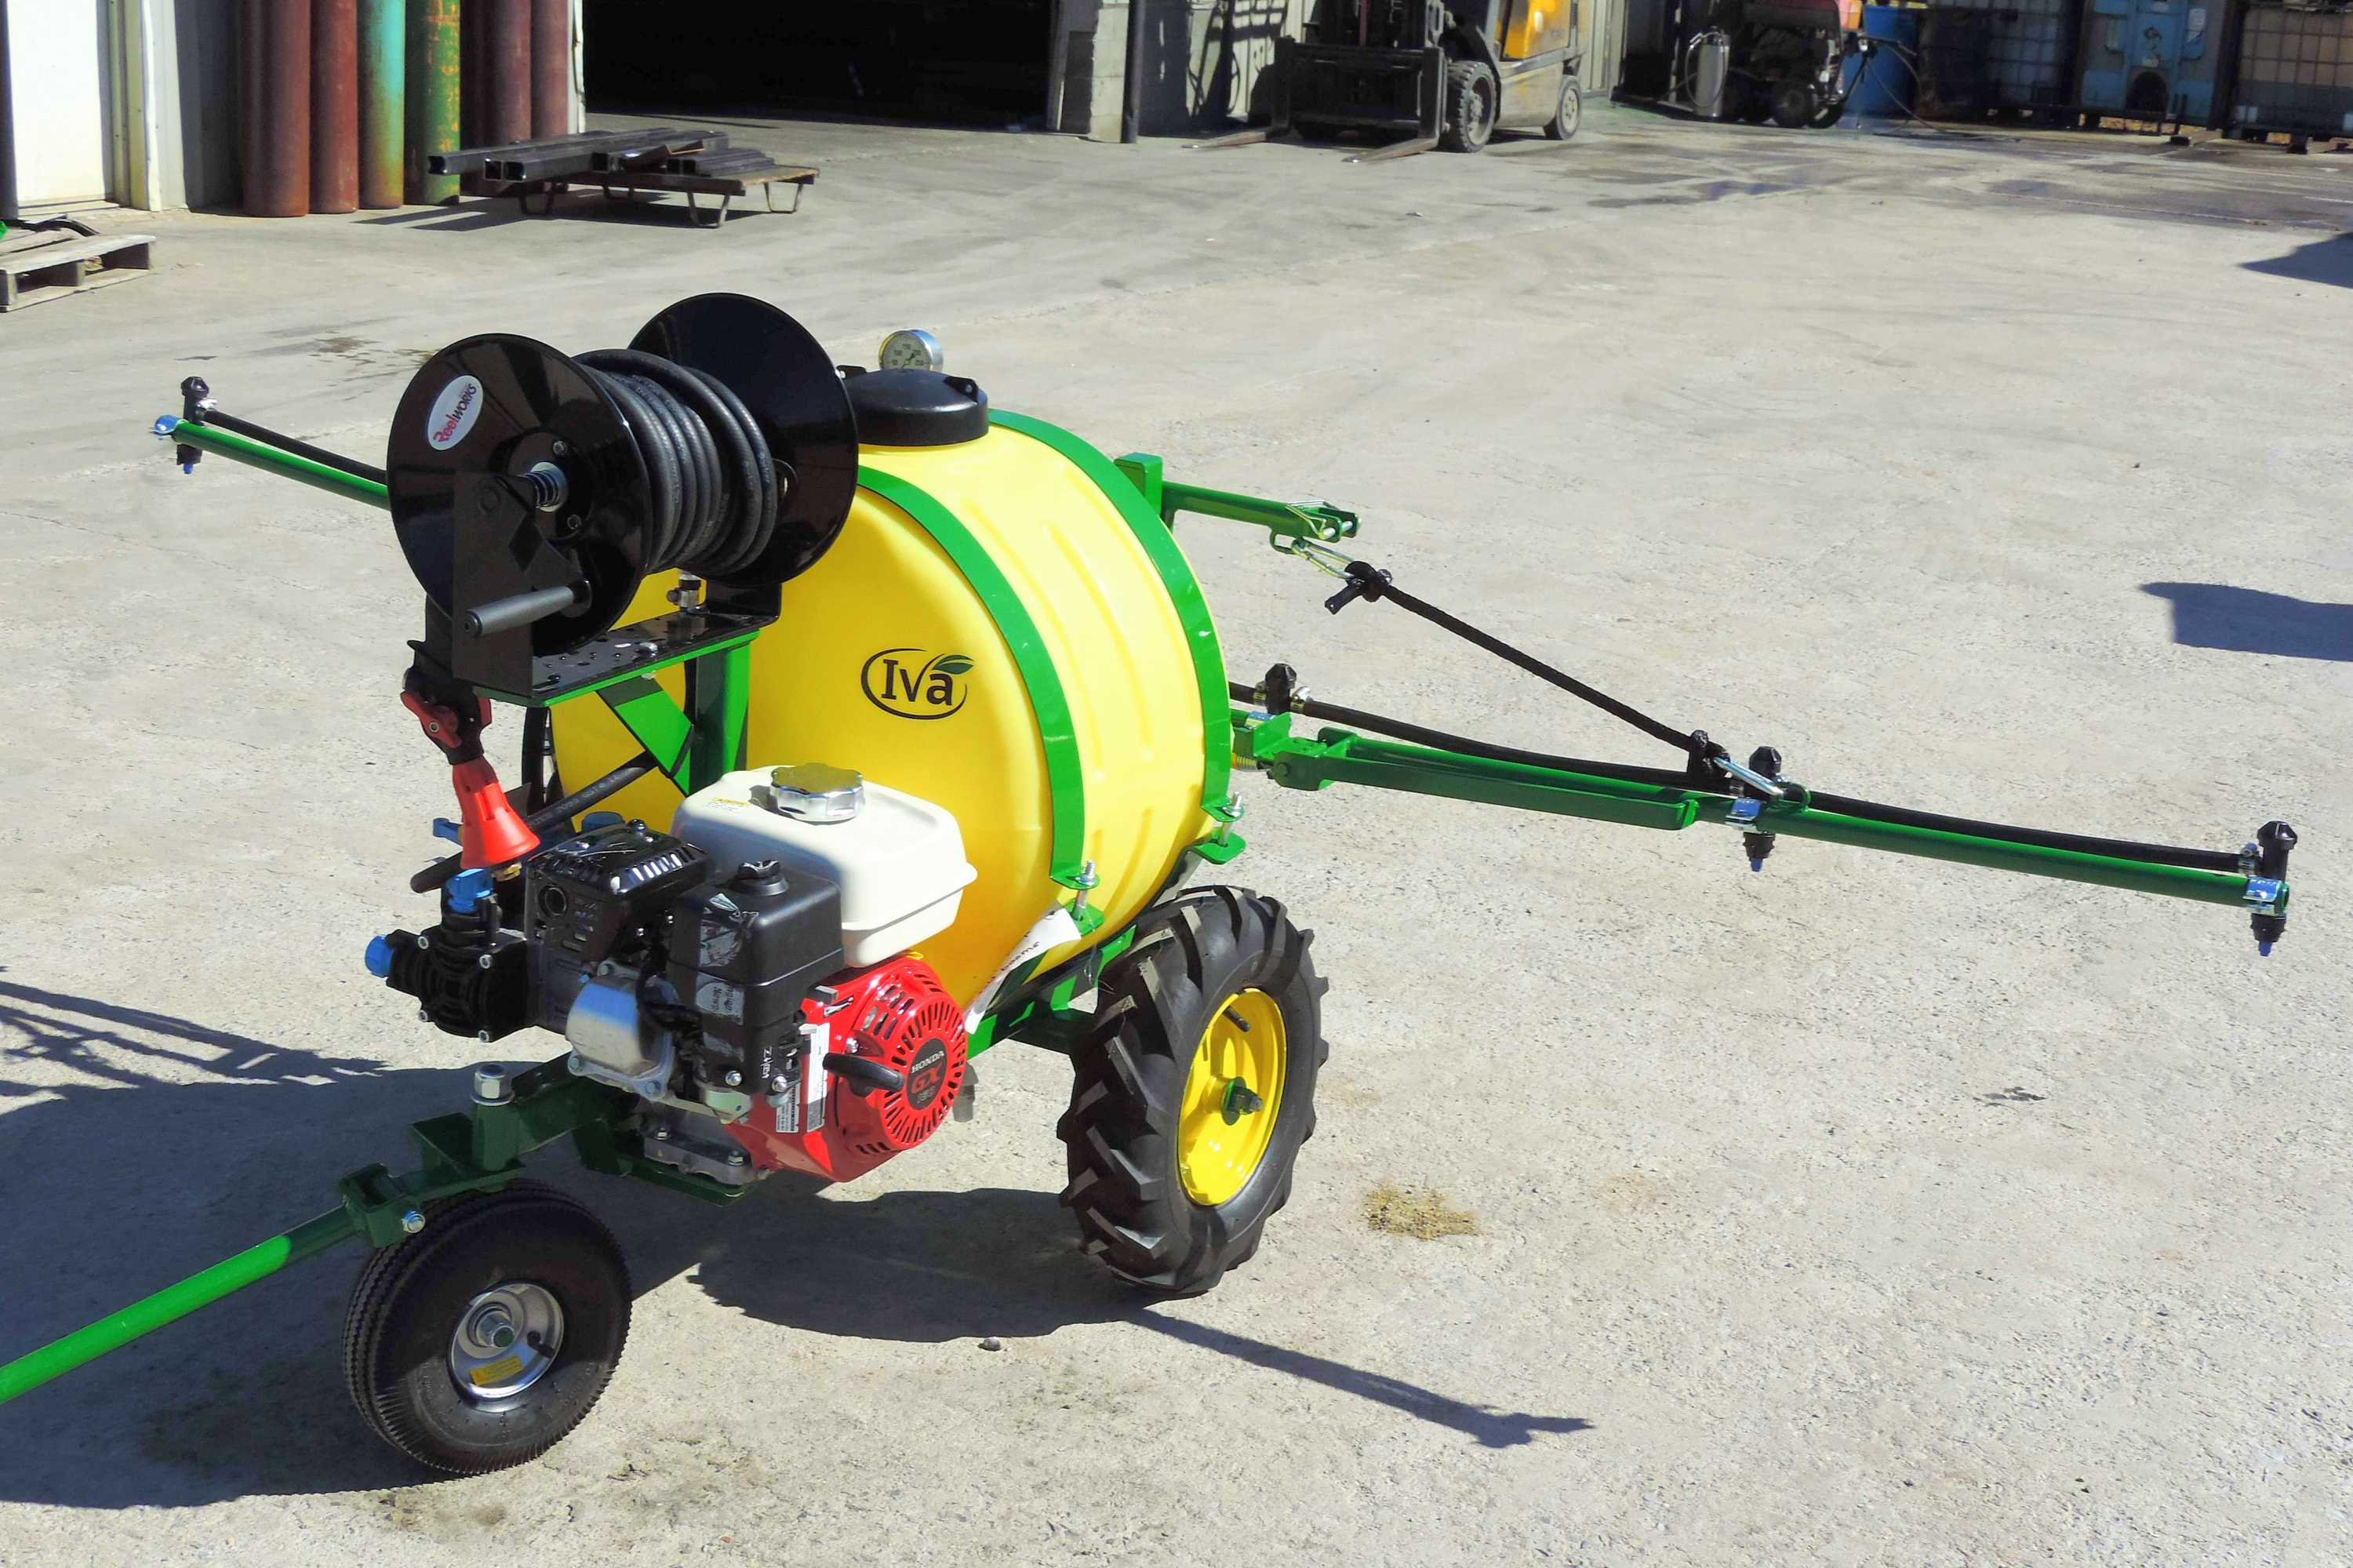 Orchard sprayer with 25 gallon tank and hose reel and spray wand